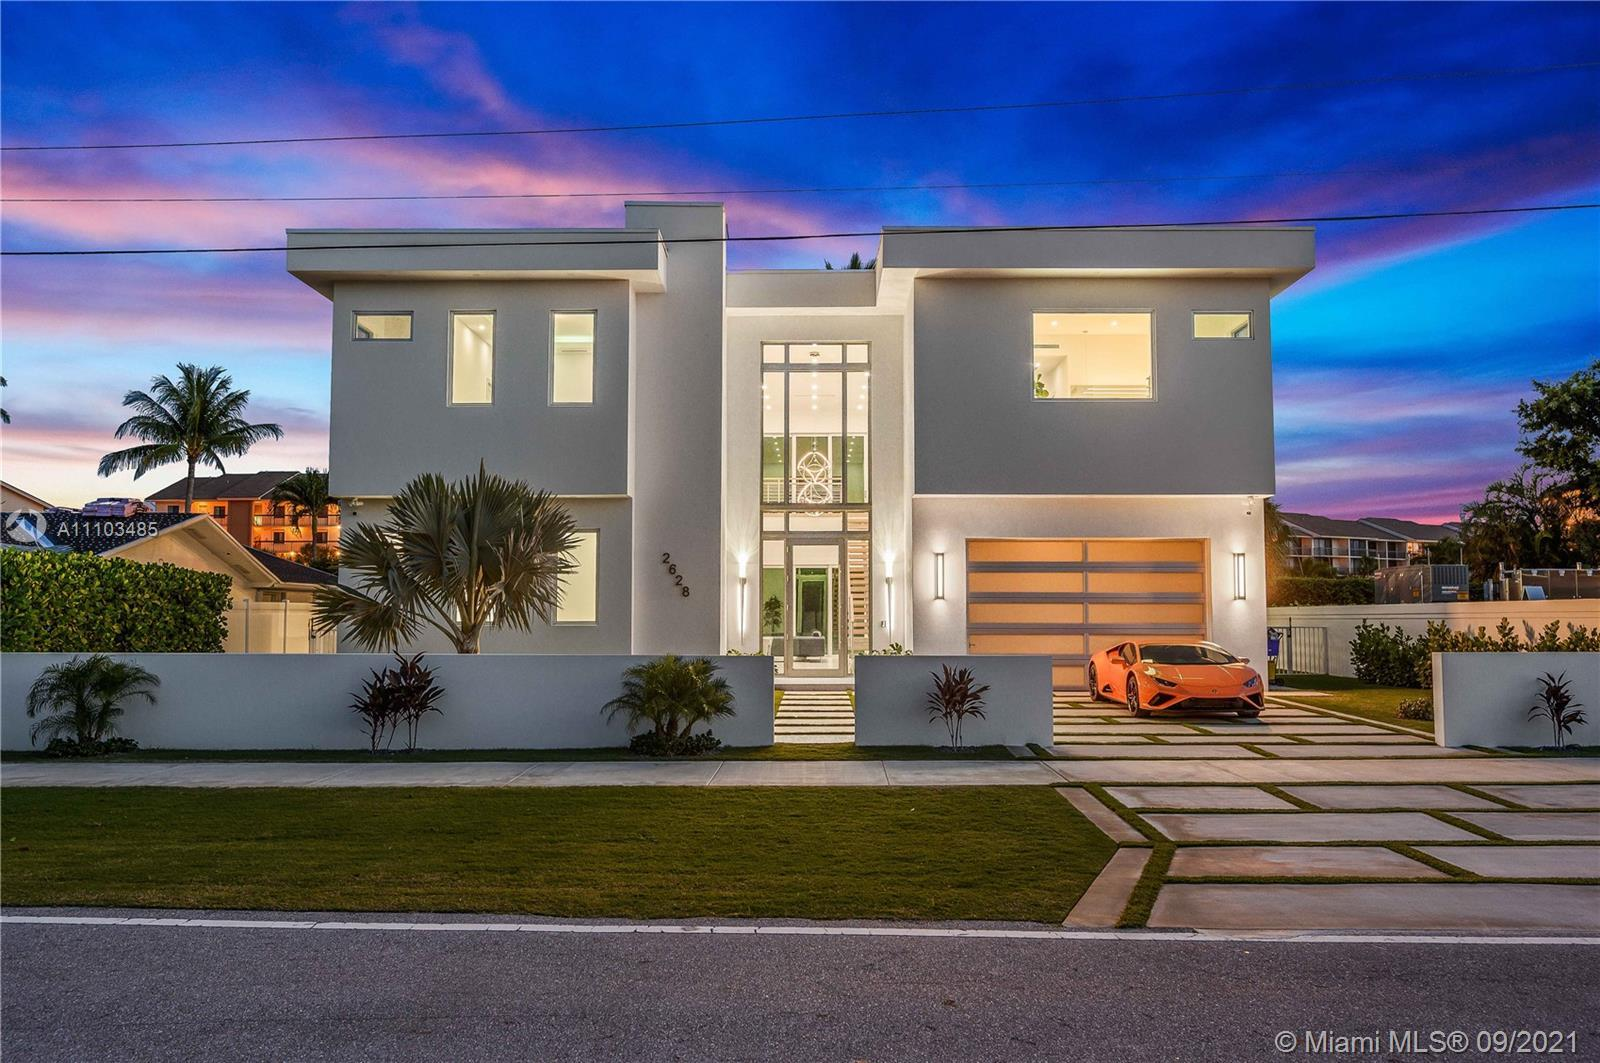 New Construction Modern Estate in the Heart of Jupiter Beach. Walking distance to the scenic Jupiter